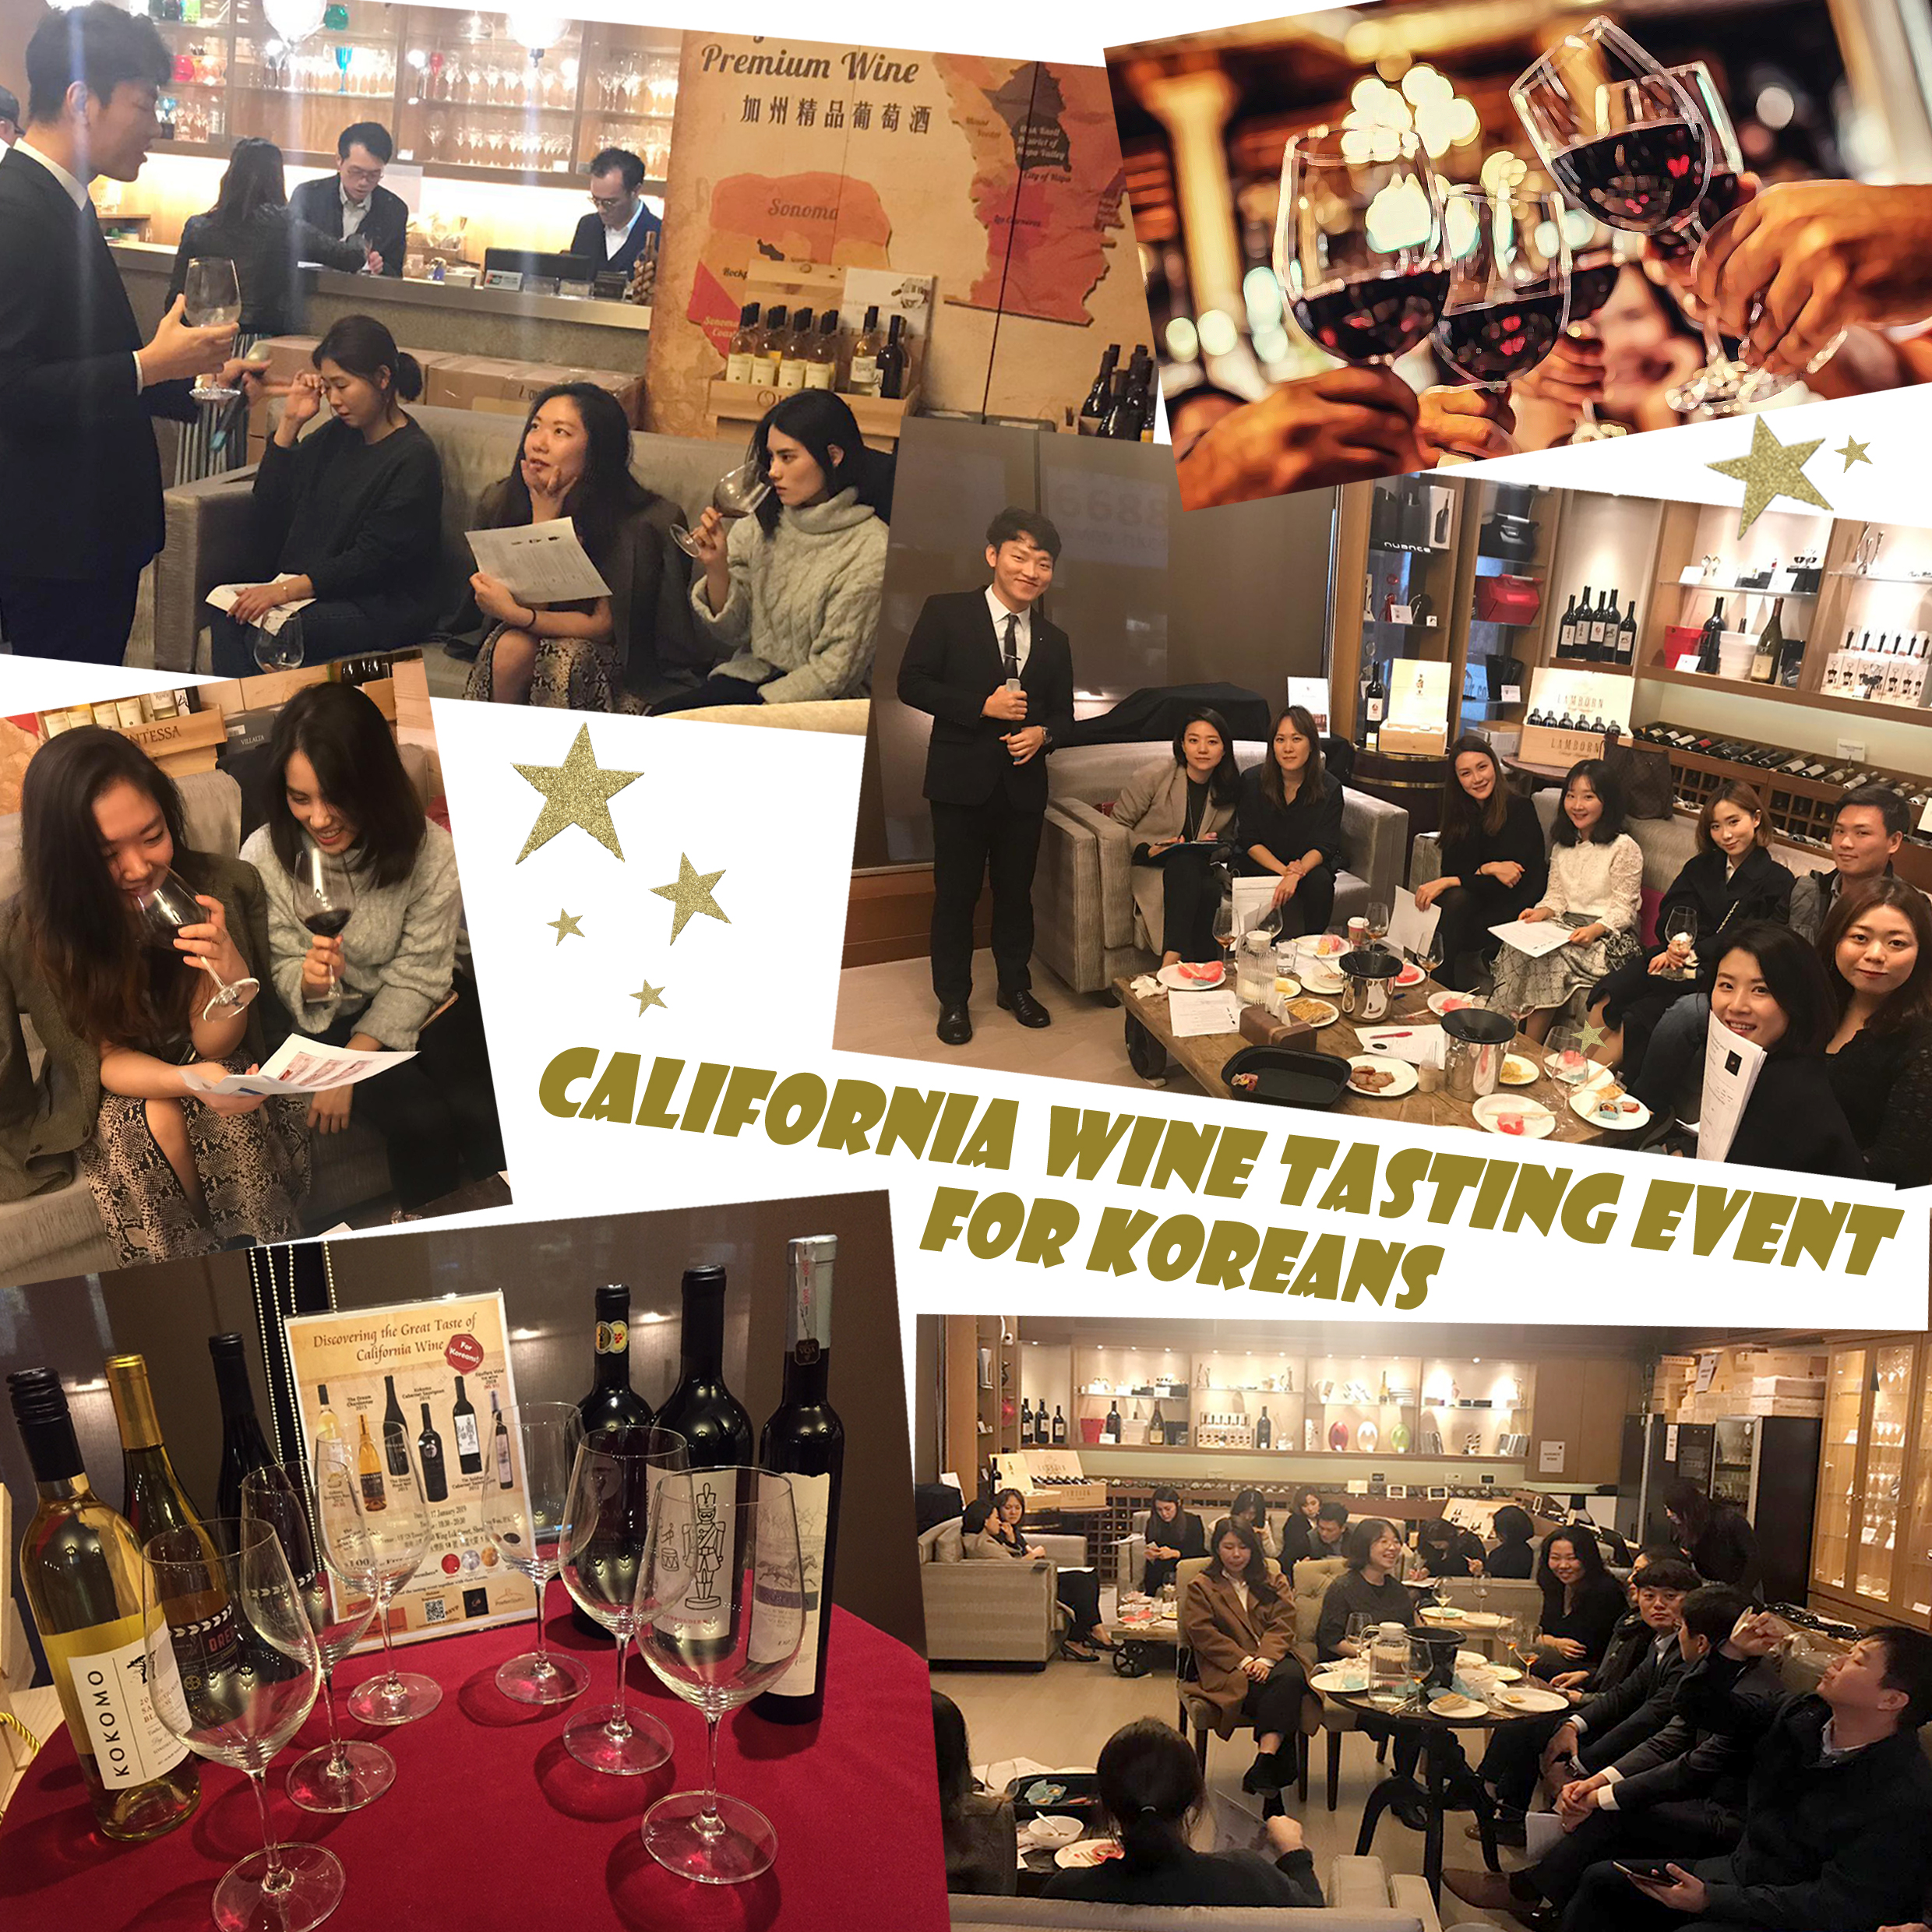 California Wine Tasting for Koreans